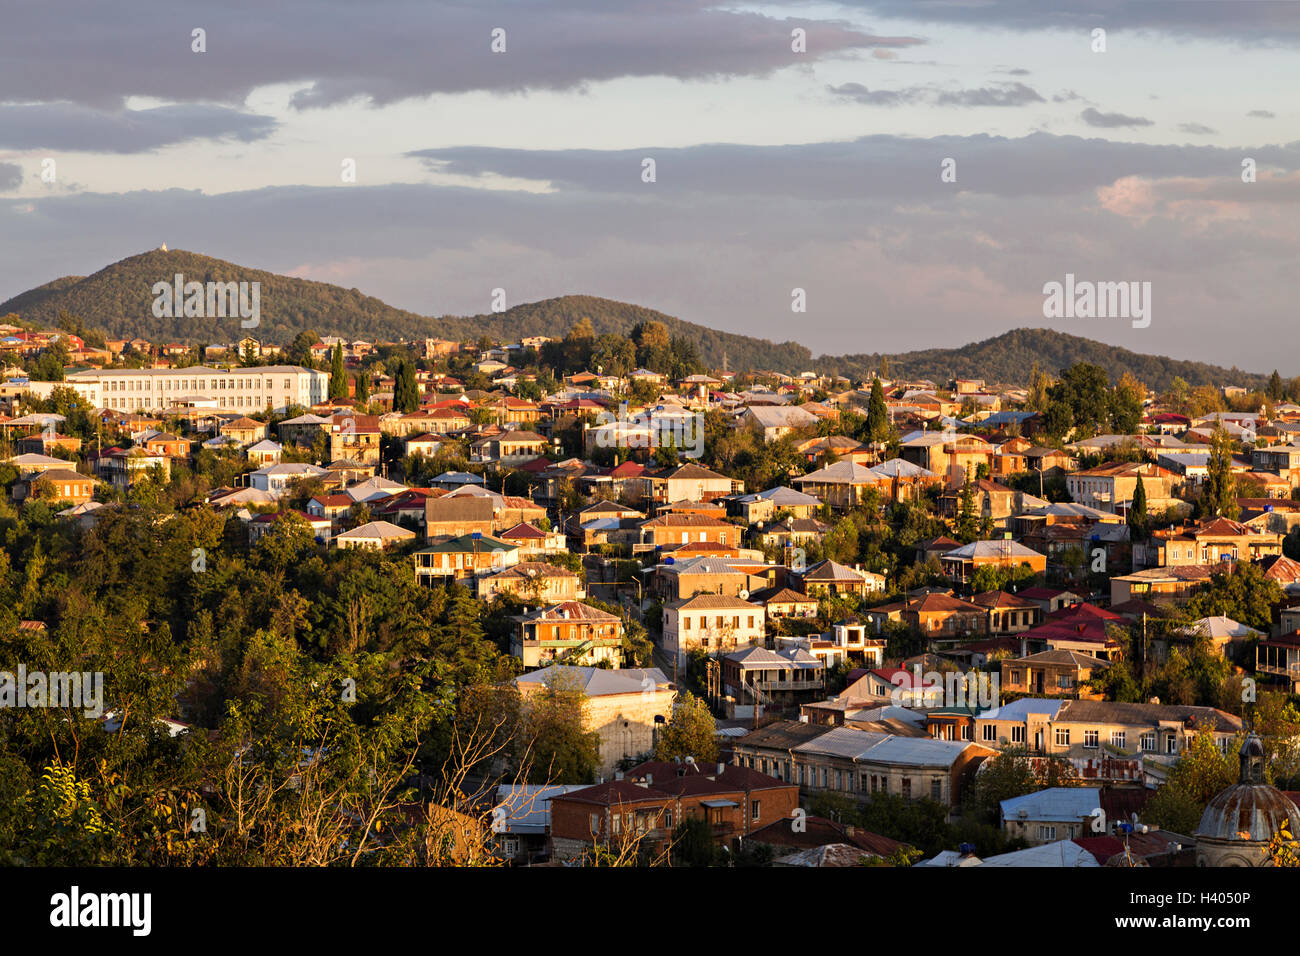 Houses on th slope of a mountain. - Stock Image